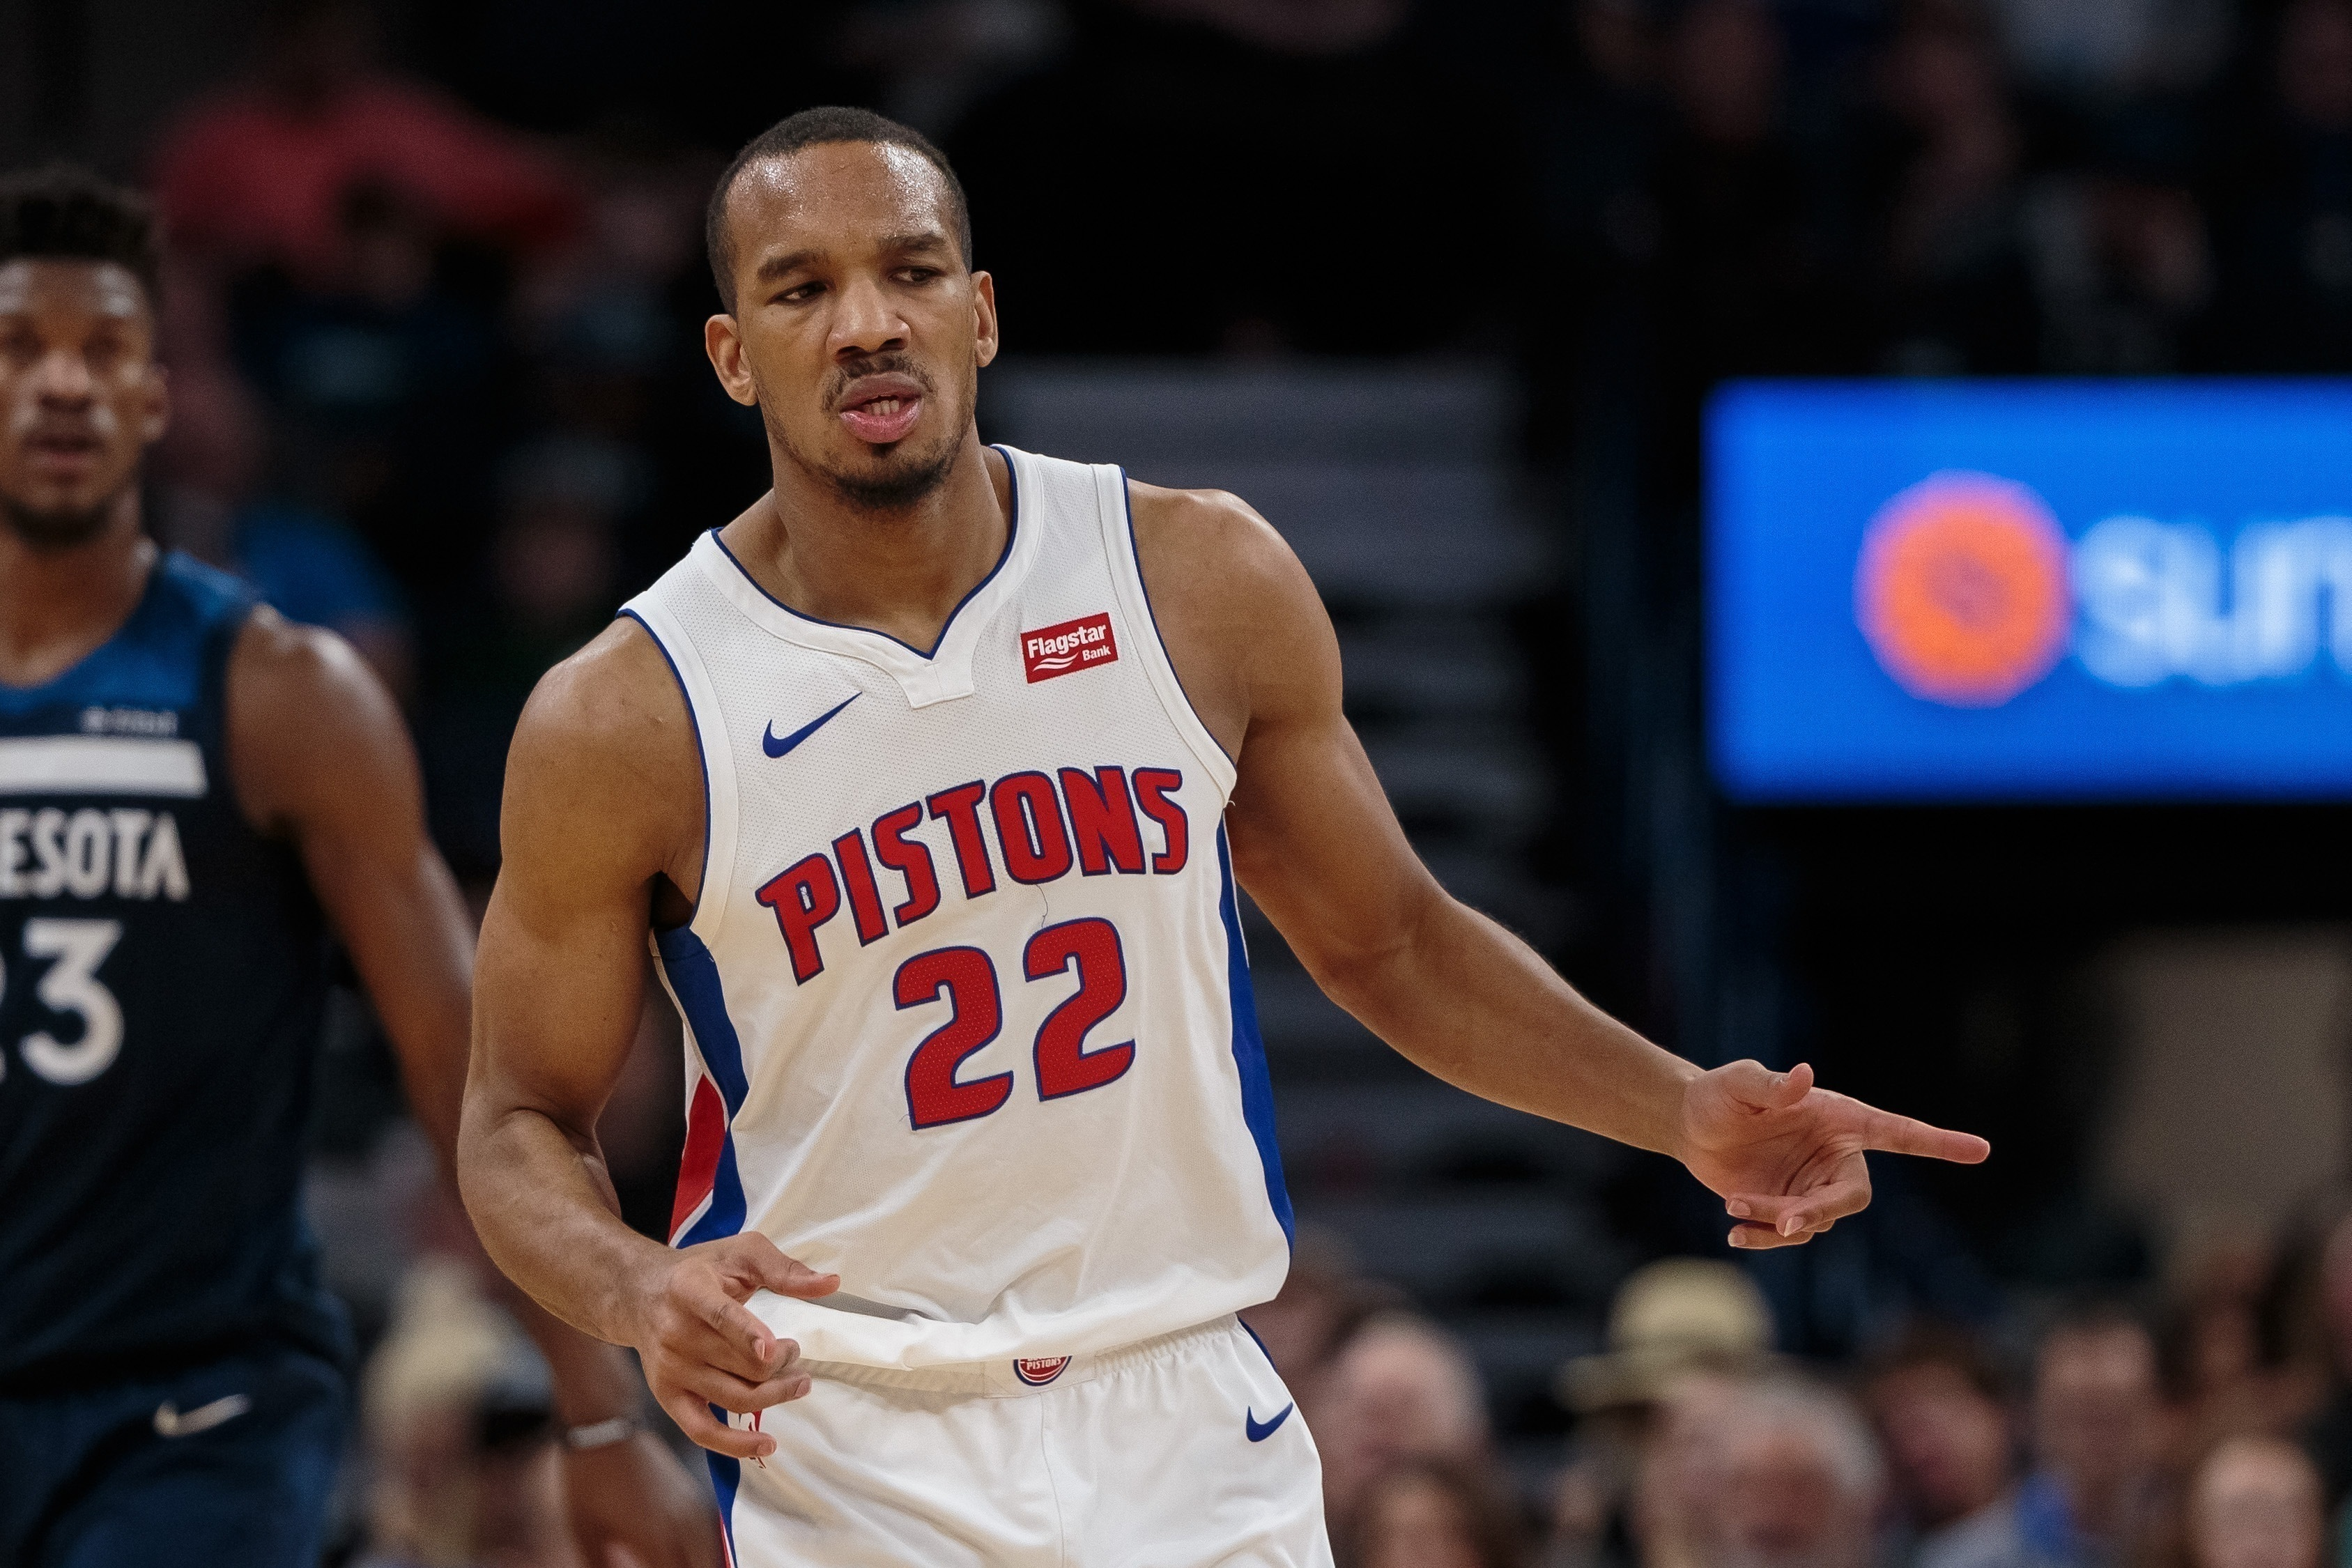 Pistons Put Avery Bradley On Trade Block, Eye 'Significant' Return